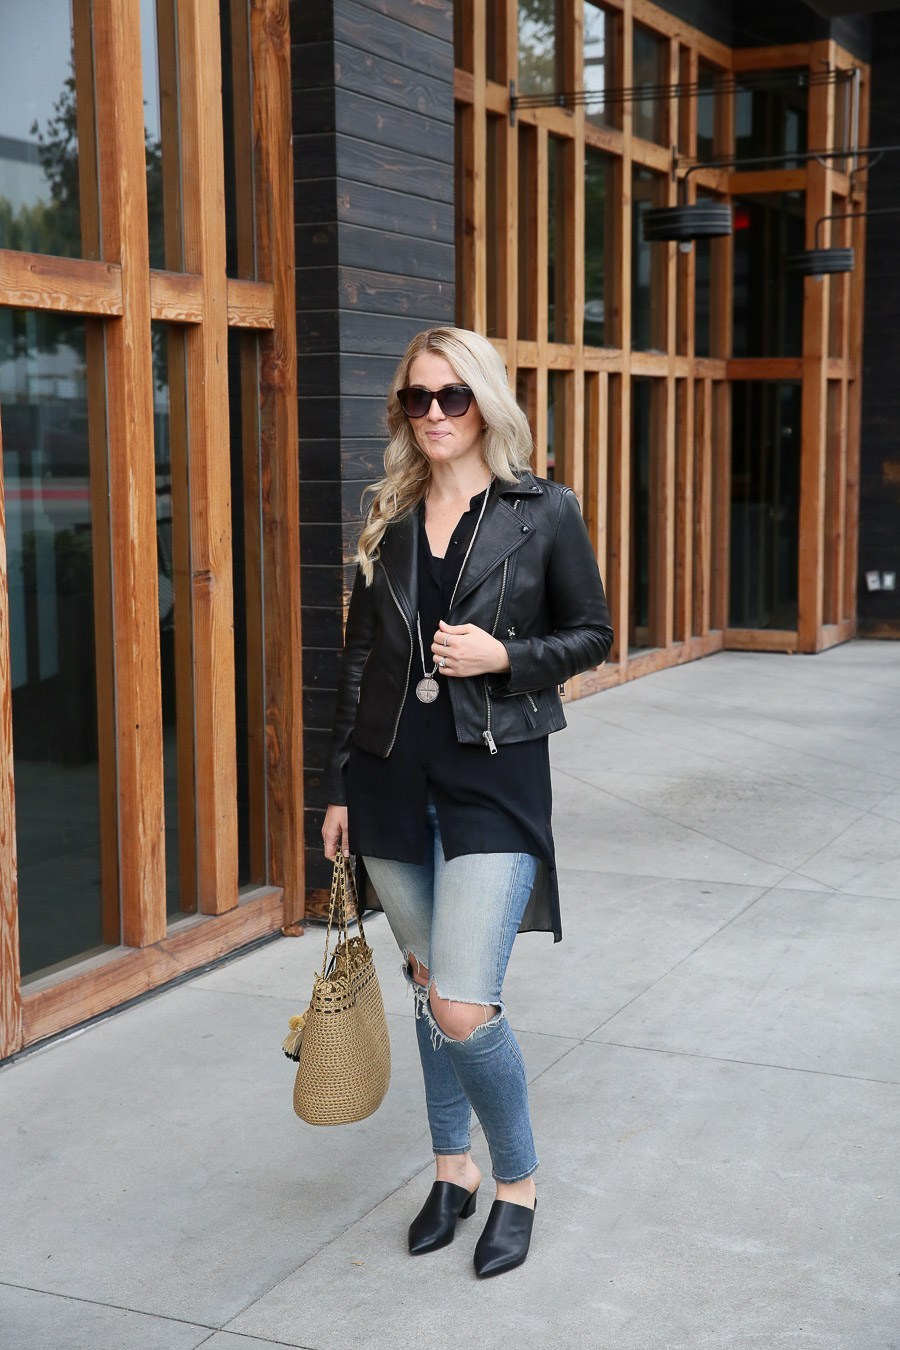 Straw Bag Tote with Ripped Jeans + Leather Jacket